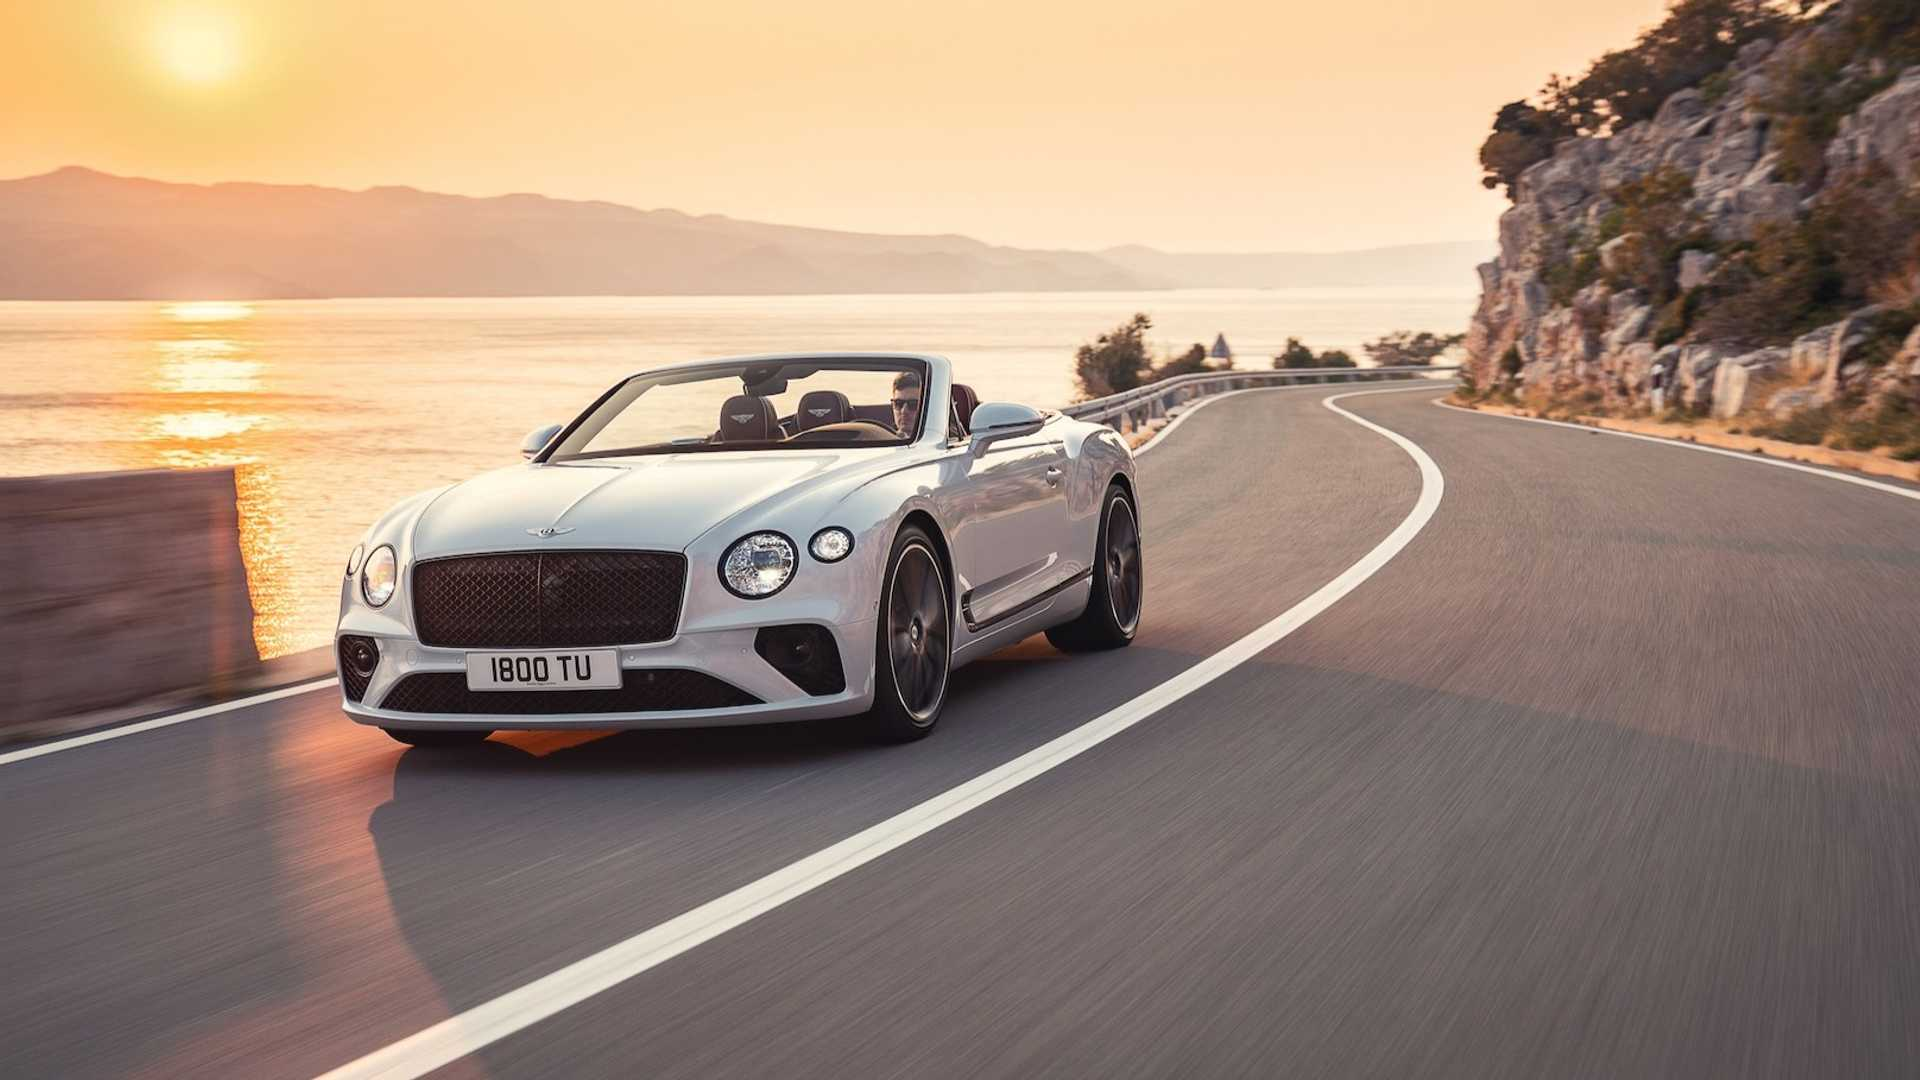 2019 Bentley Continental Gtc Is All About The Open Air